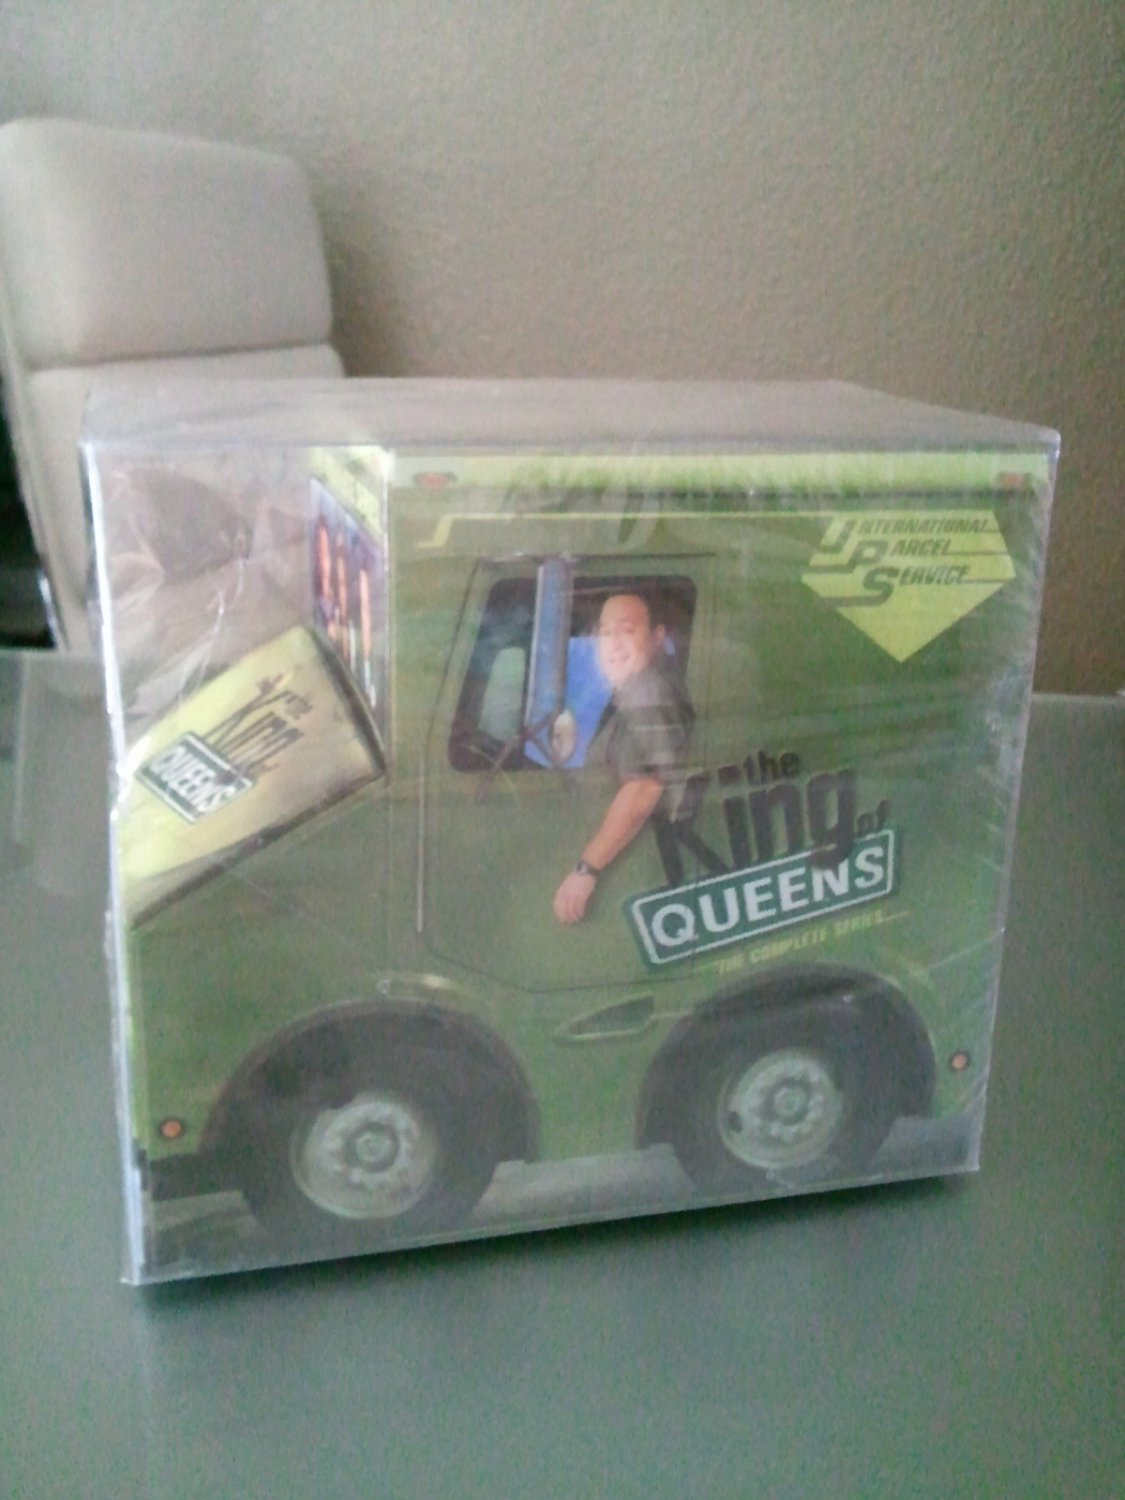 The King of Queens Complete Season 1-9